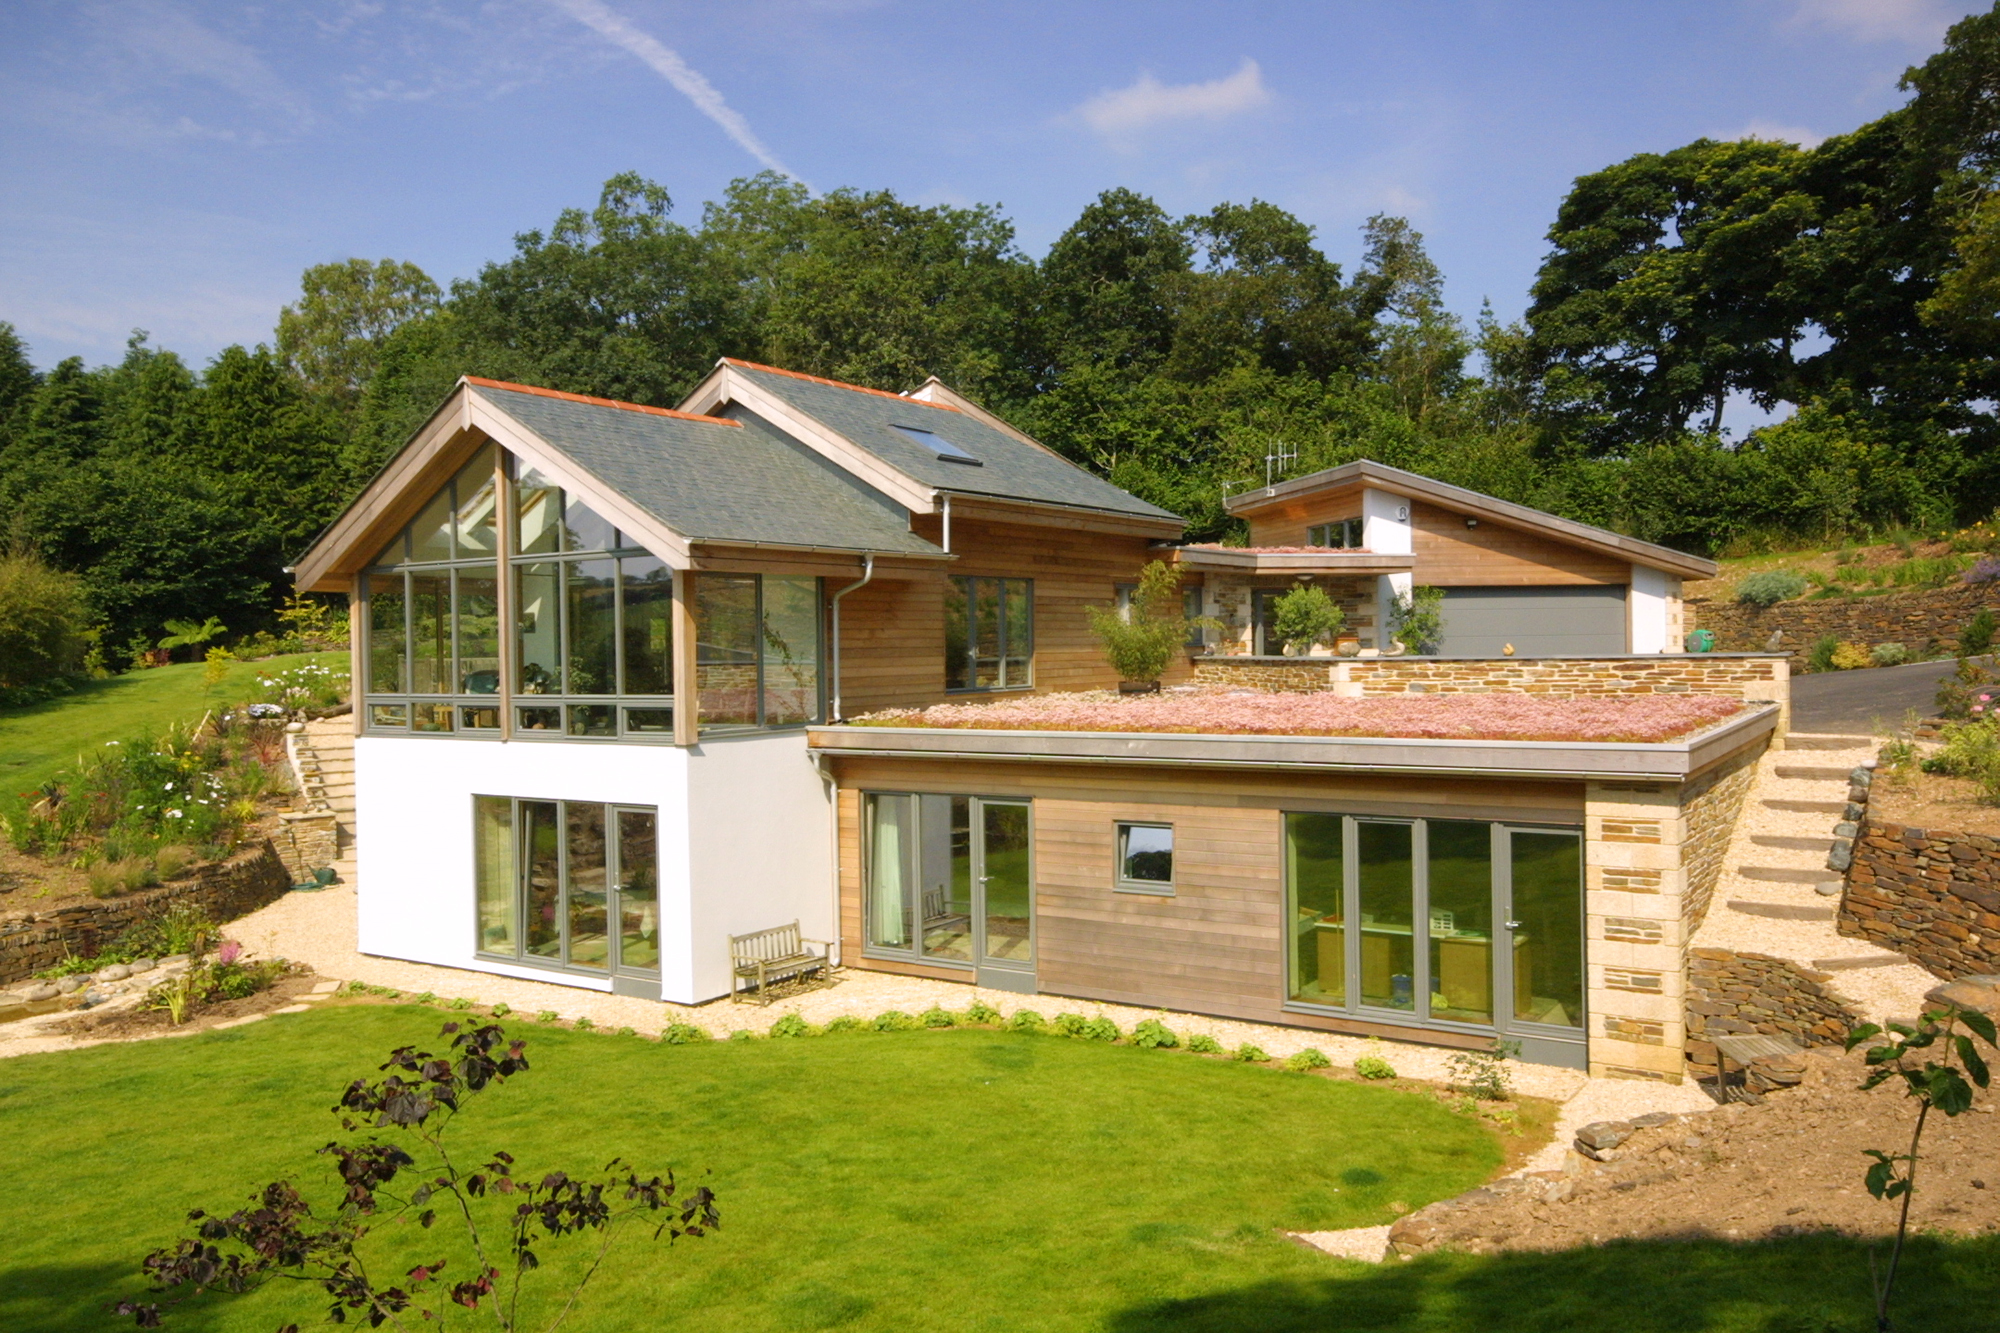 How To Design Your Own House Complete Guide Self Build